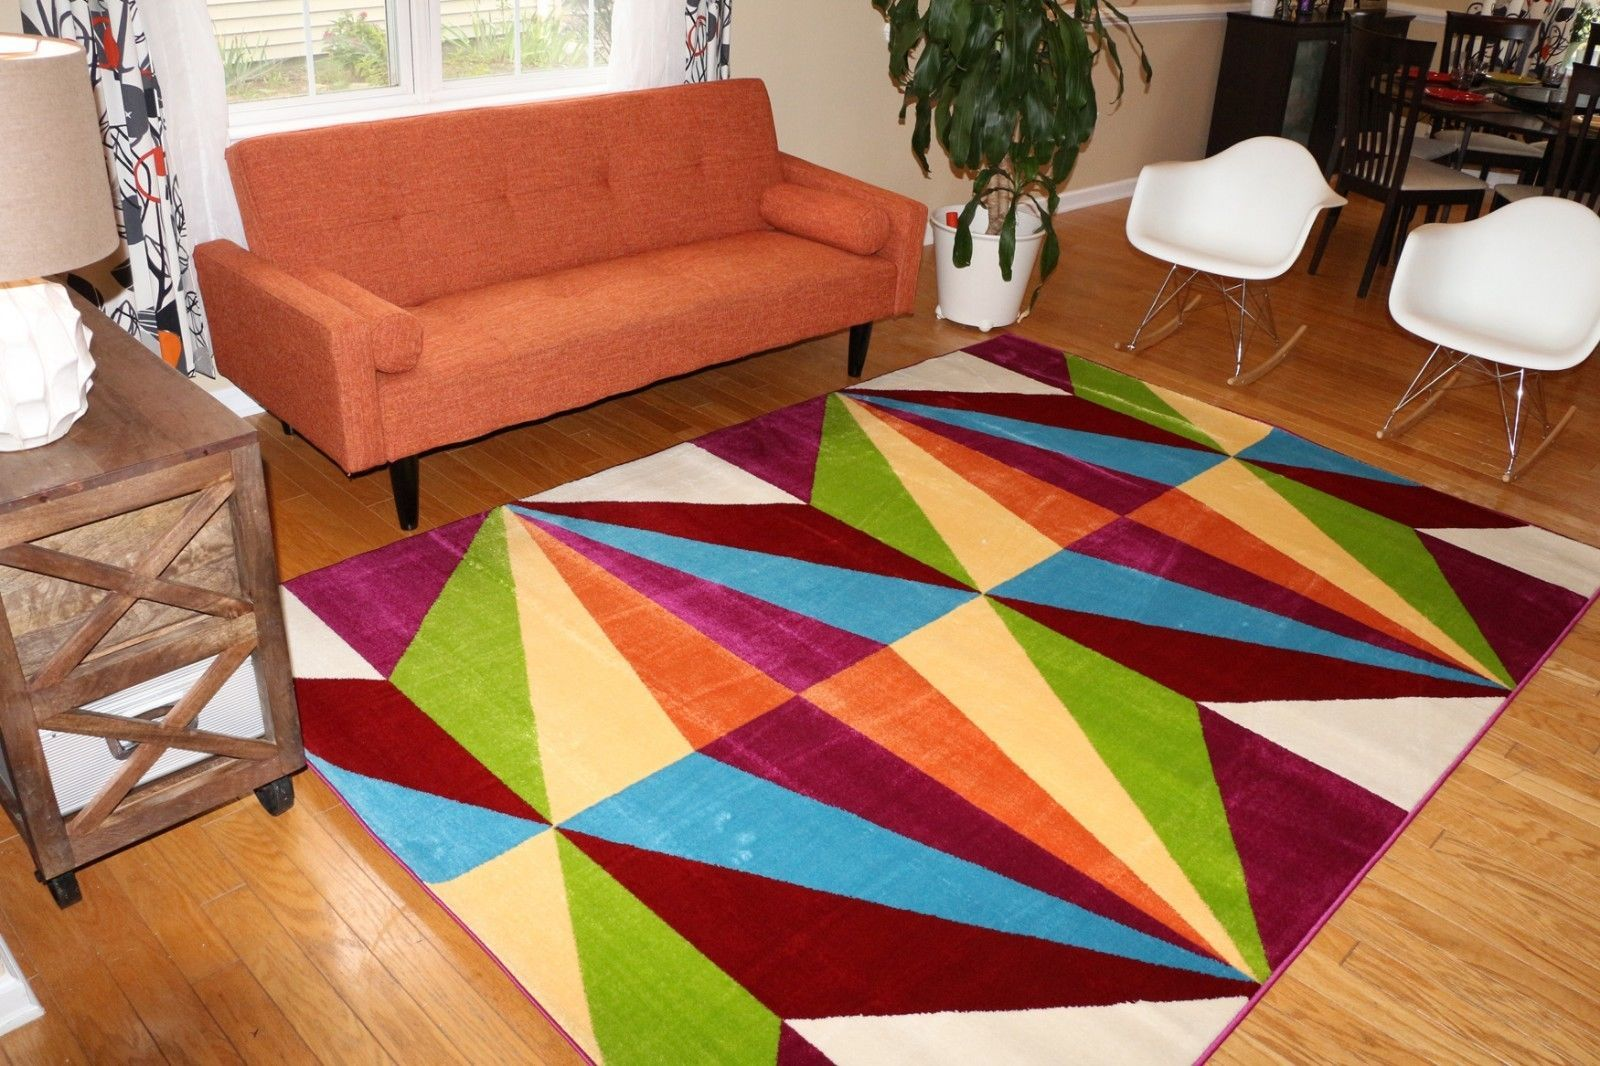 Garden and home zambia  Details about Floral City Brand Contemporary Modern Area Rugs